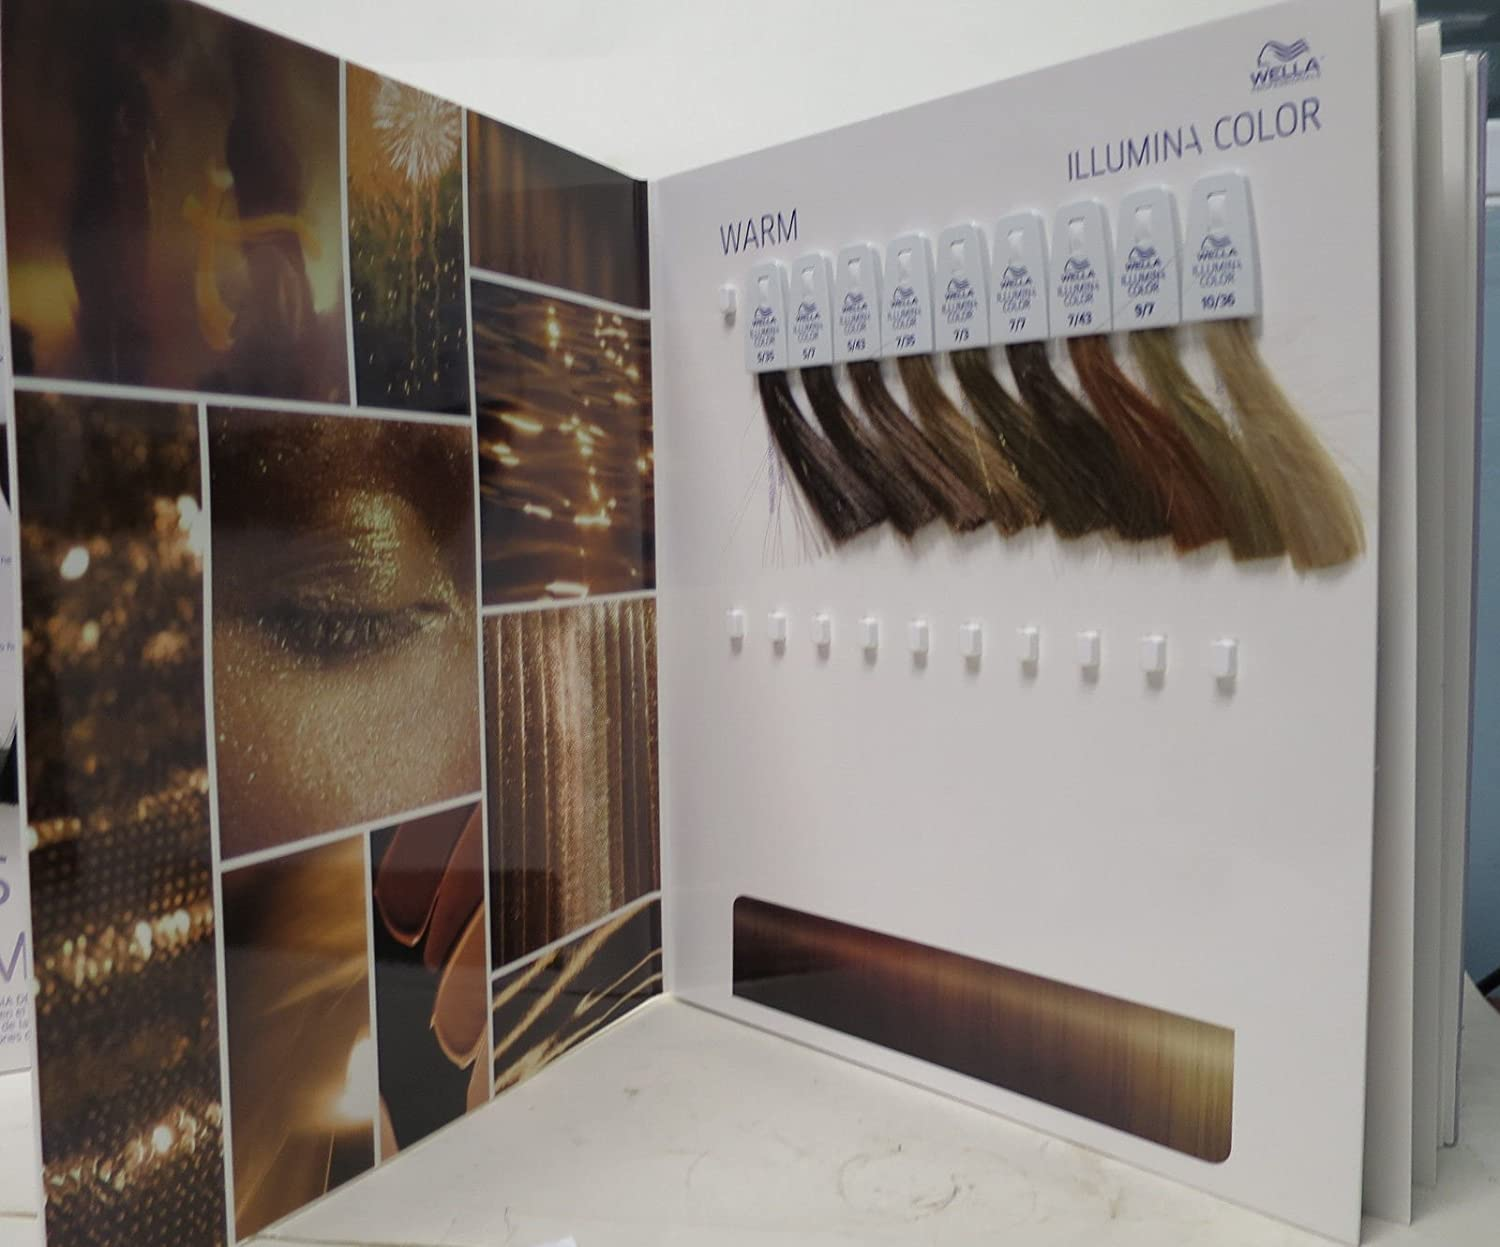 amazoncom wella professionals illumina hair color swatch book binder beauty - Hair Color Swatch Book